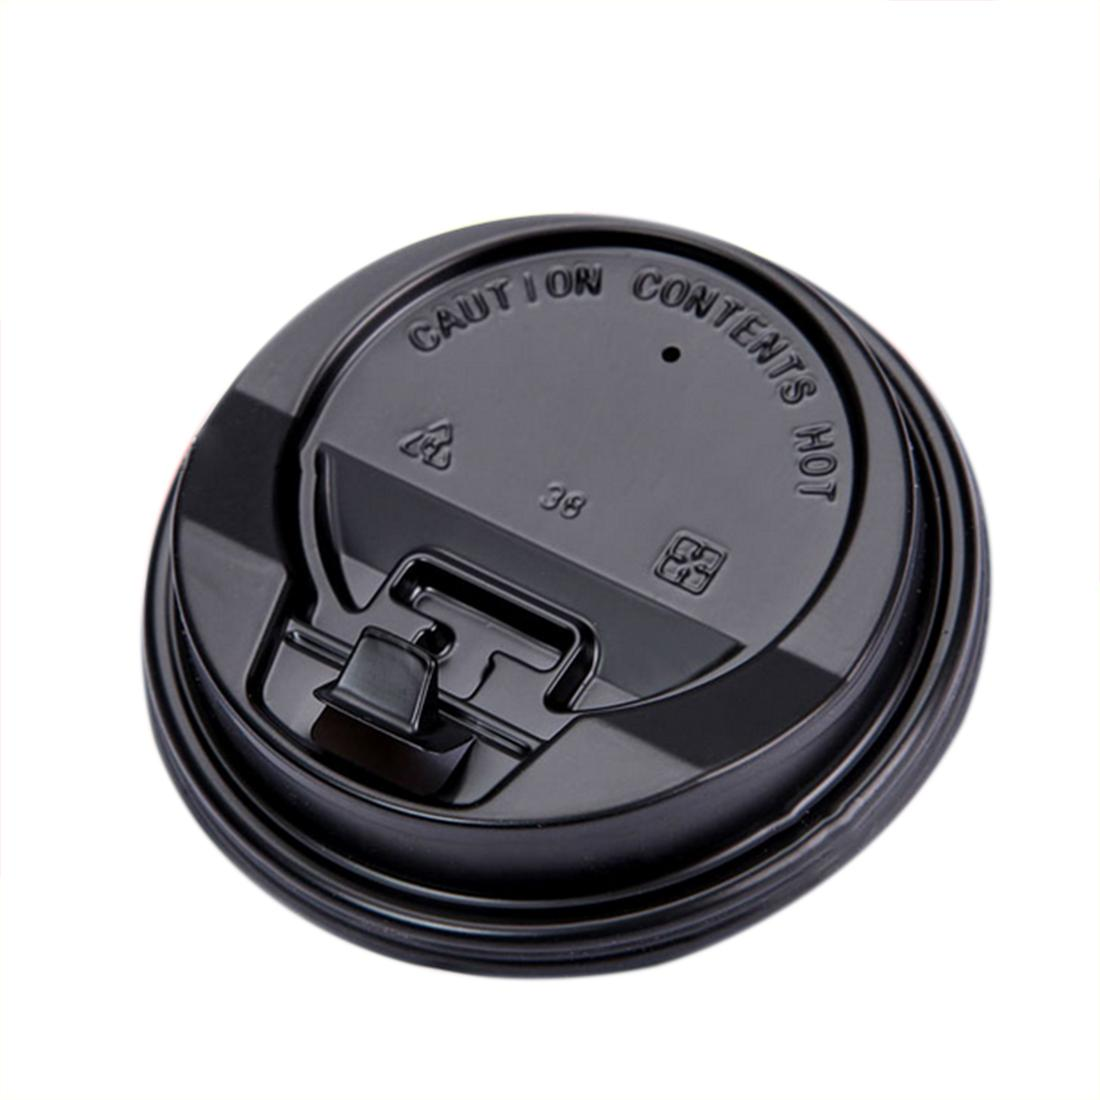 700pcs 8cm Disposable Paper Cups Lid Thicken Dome Switch Lid 8oz disposable Paper cups lids Black disposable lidding free shipping